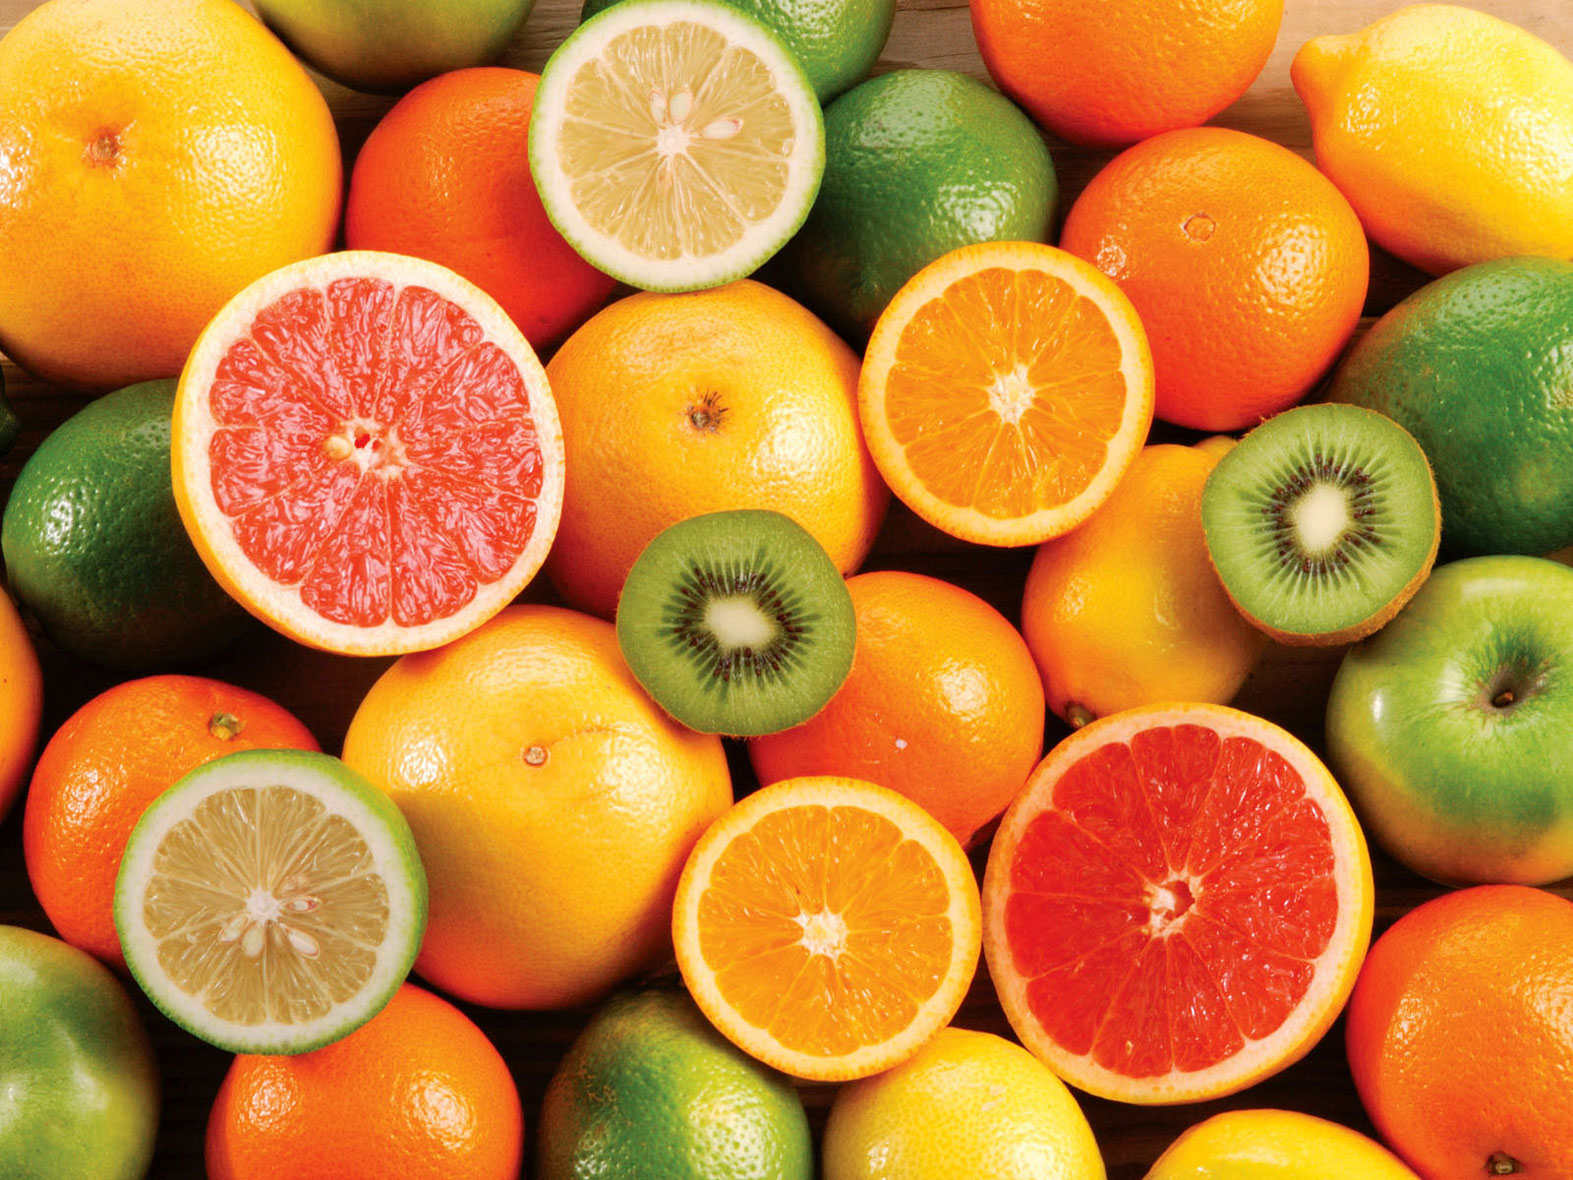 free photo delicious fruit background by stockvault